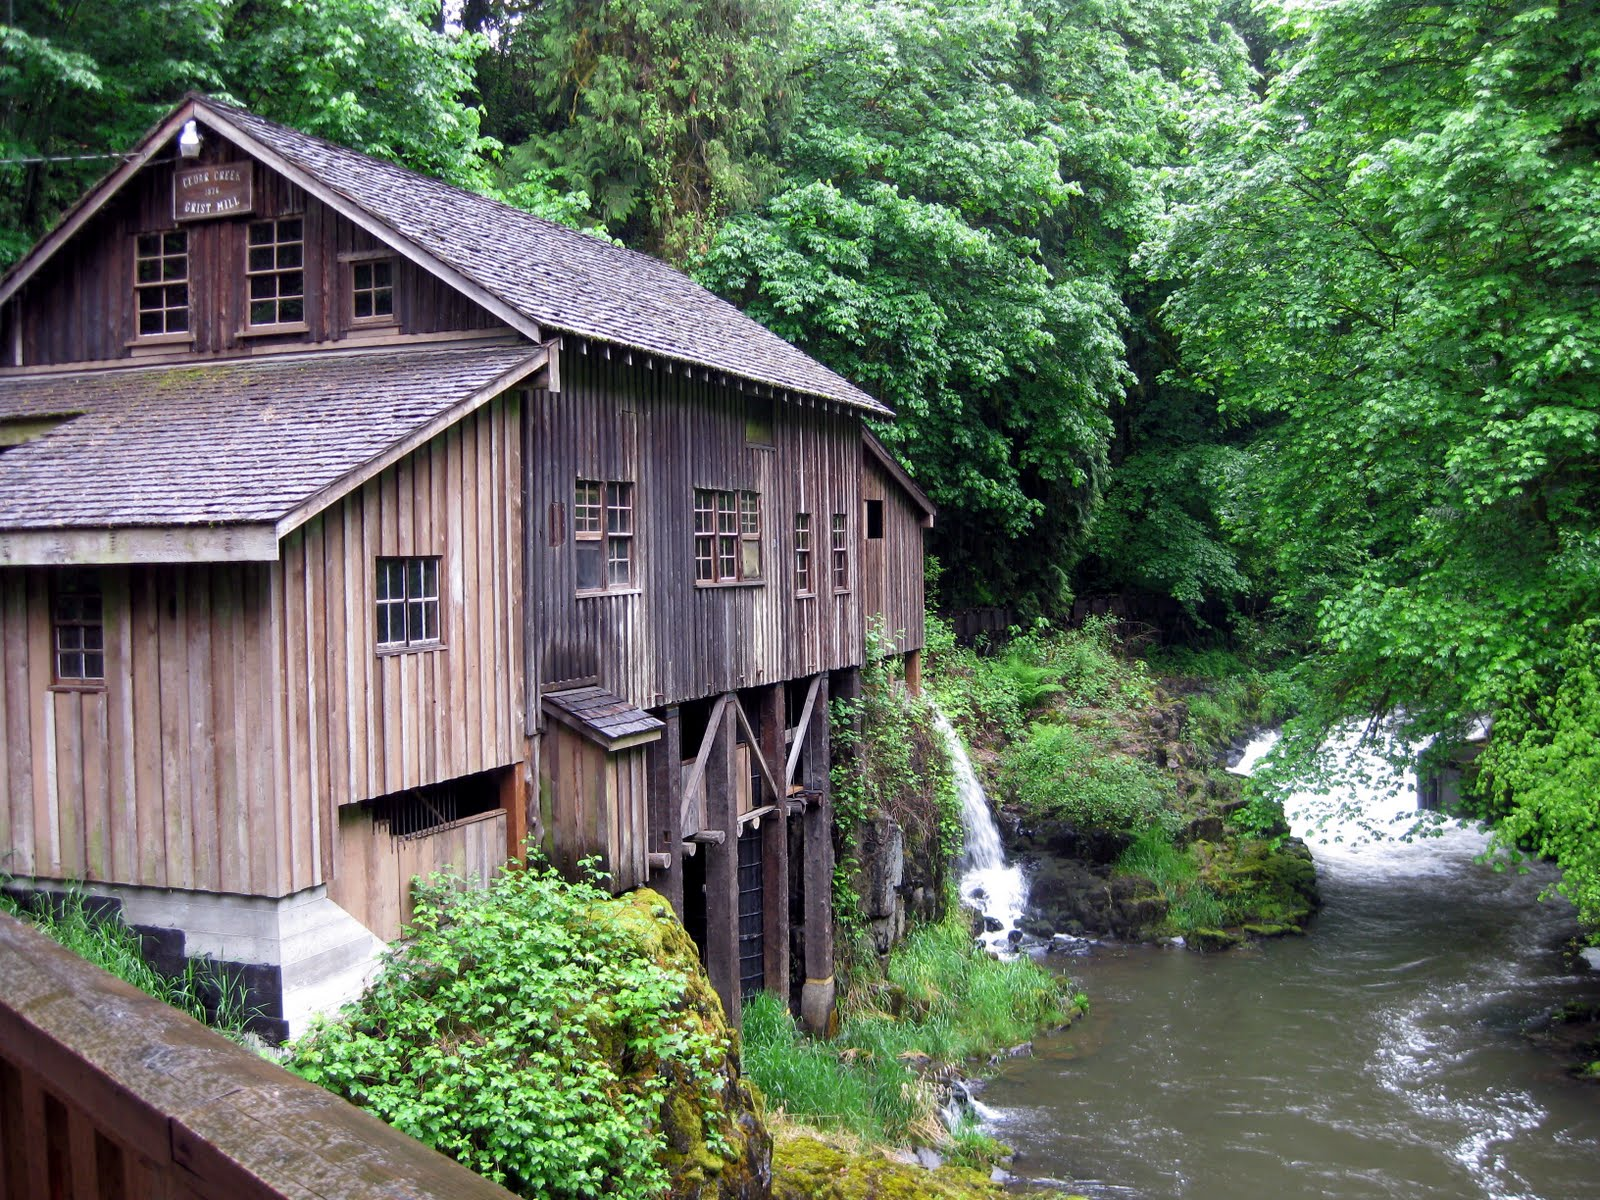 Where are the dixons today cedar creek grist mill for The cedar mill